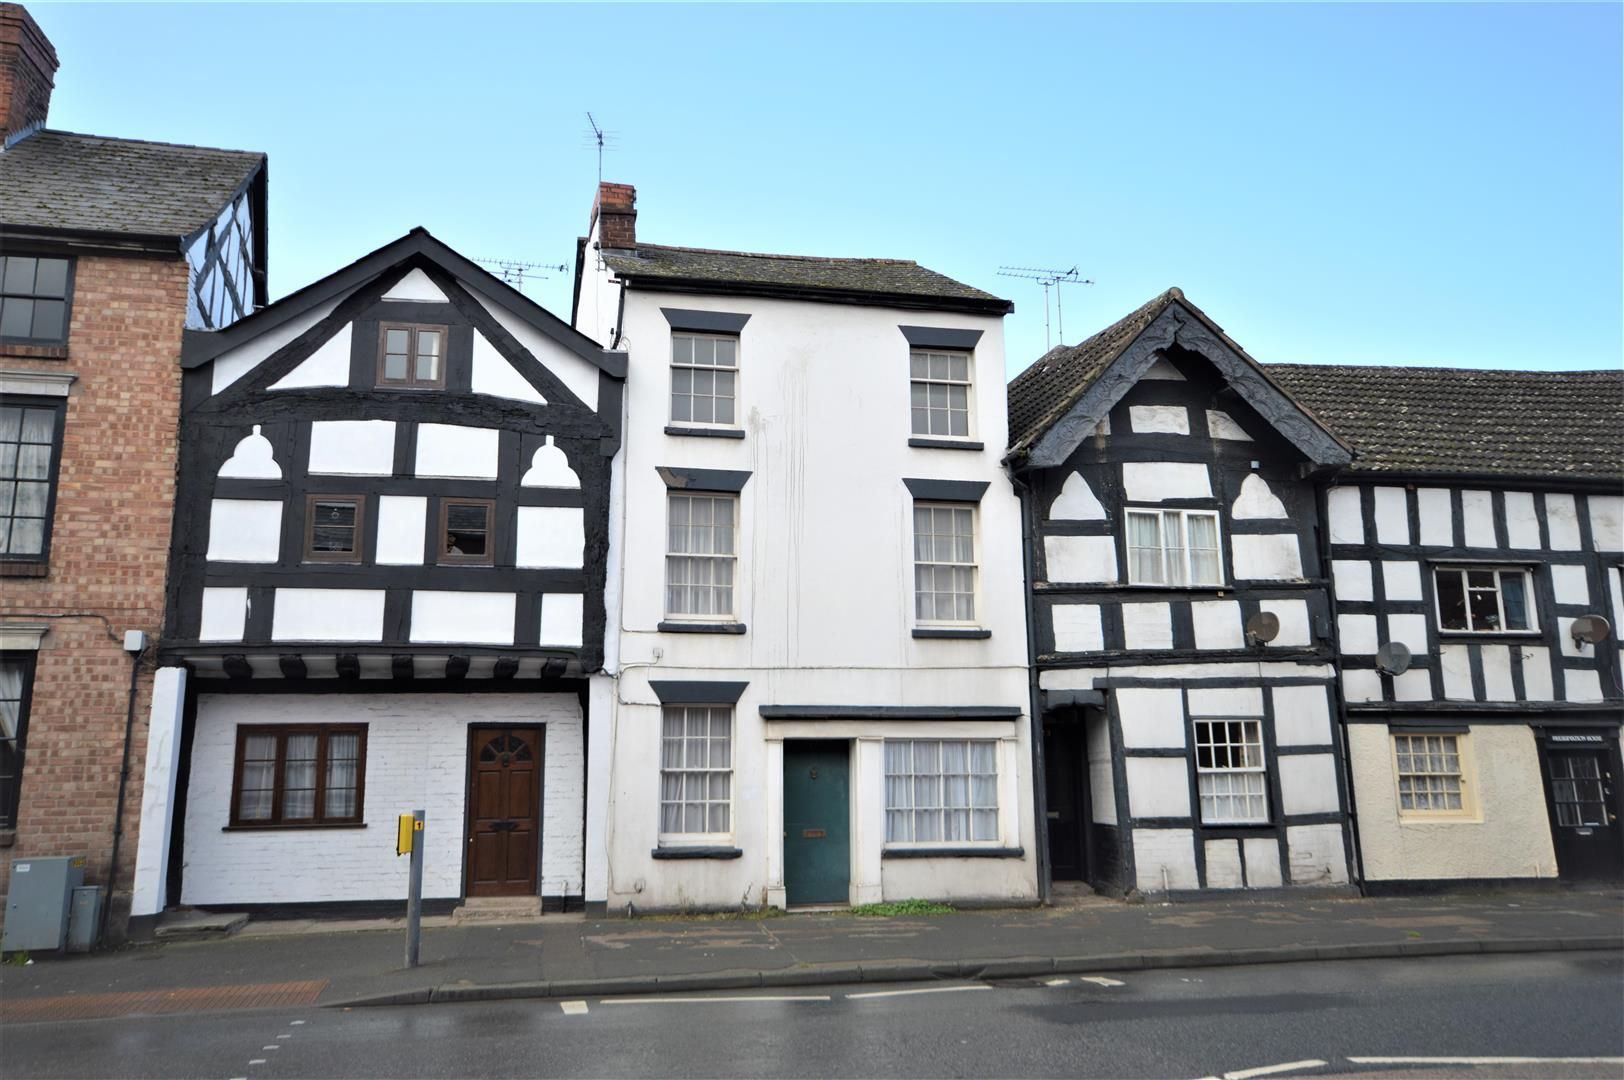 4 bed terraced for sale in Leominster - Property Image 1